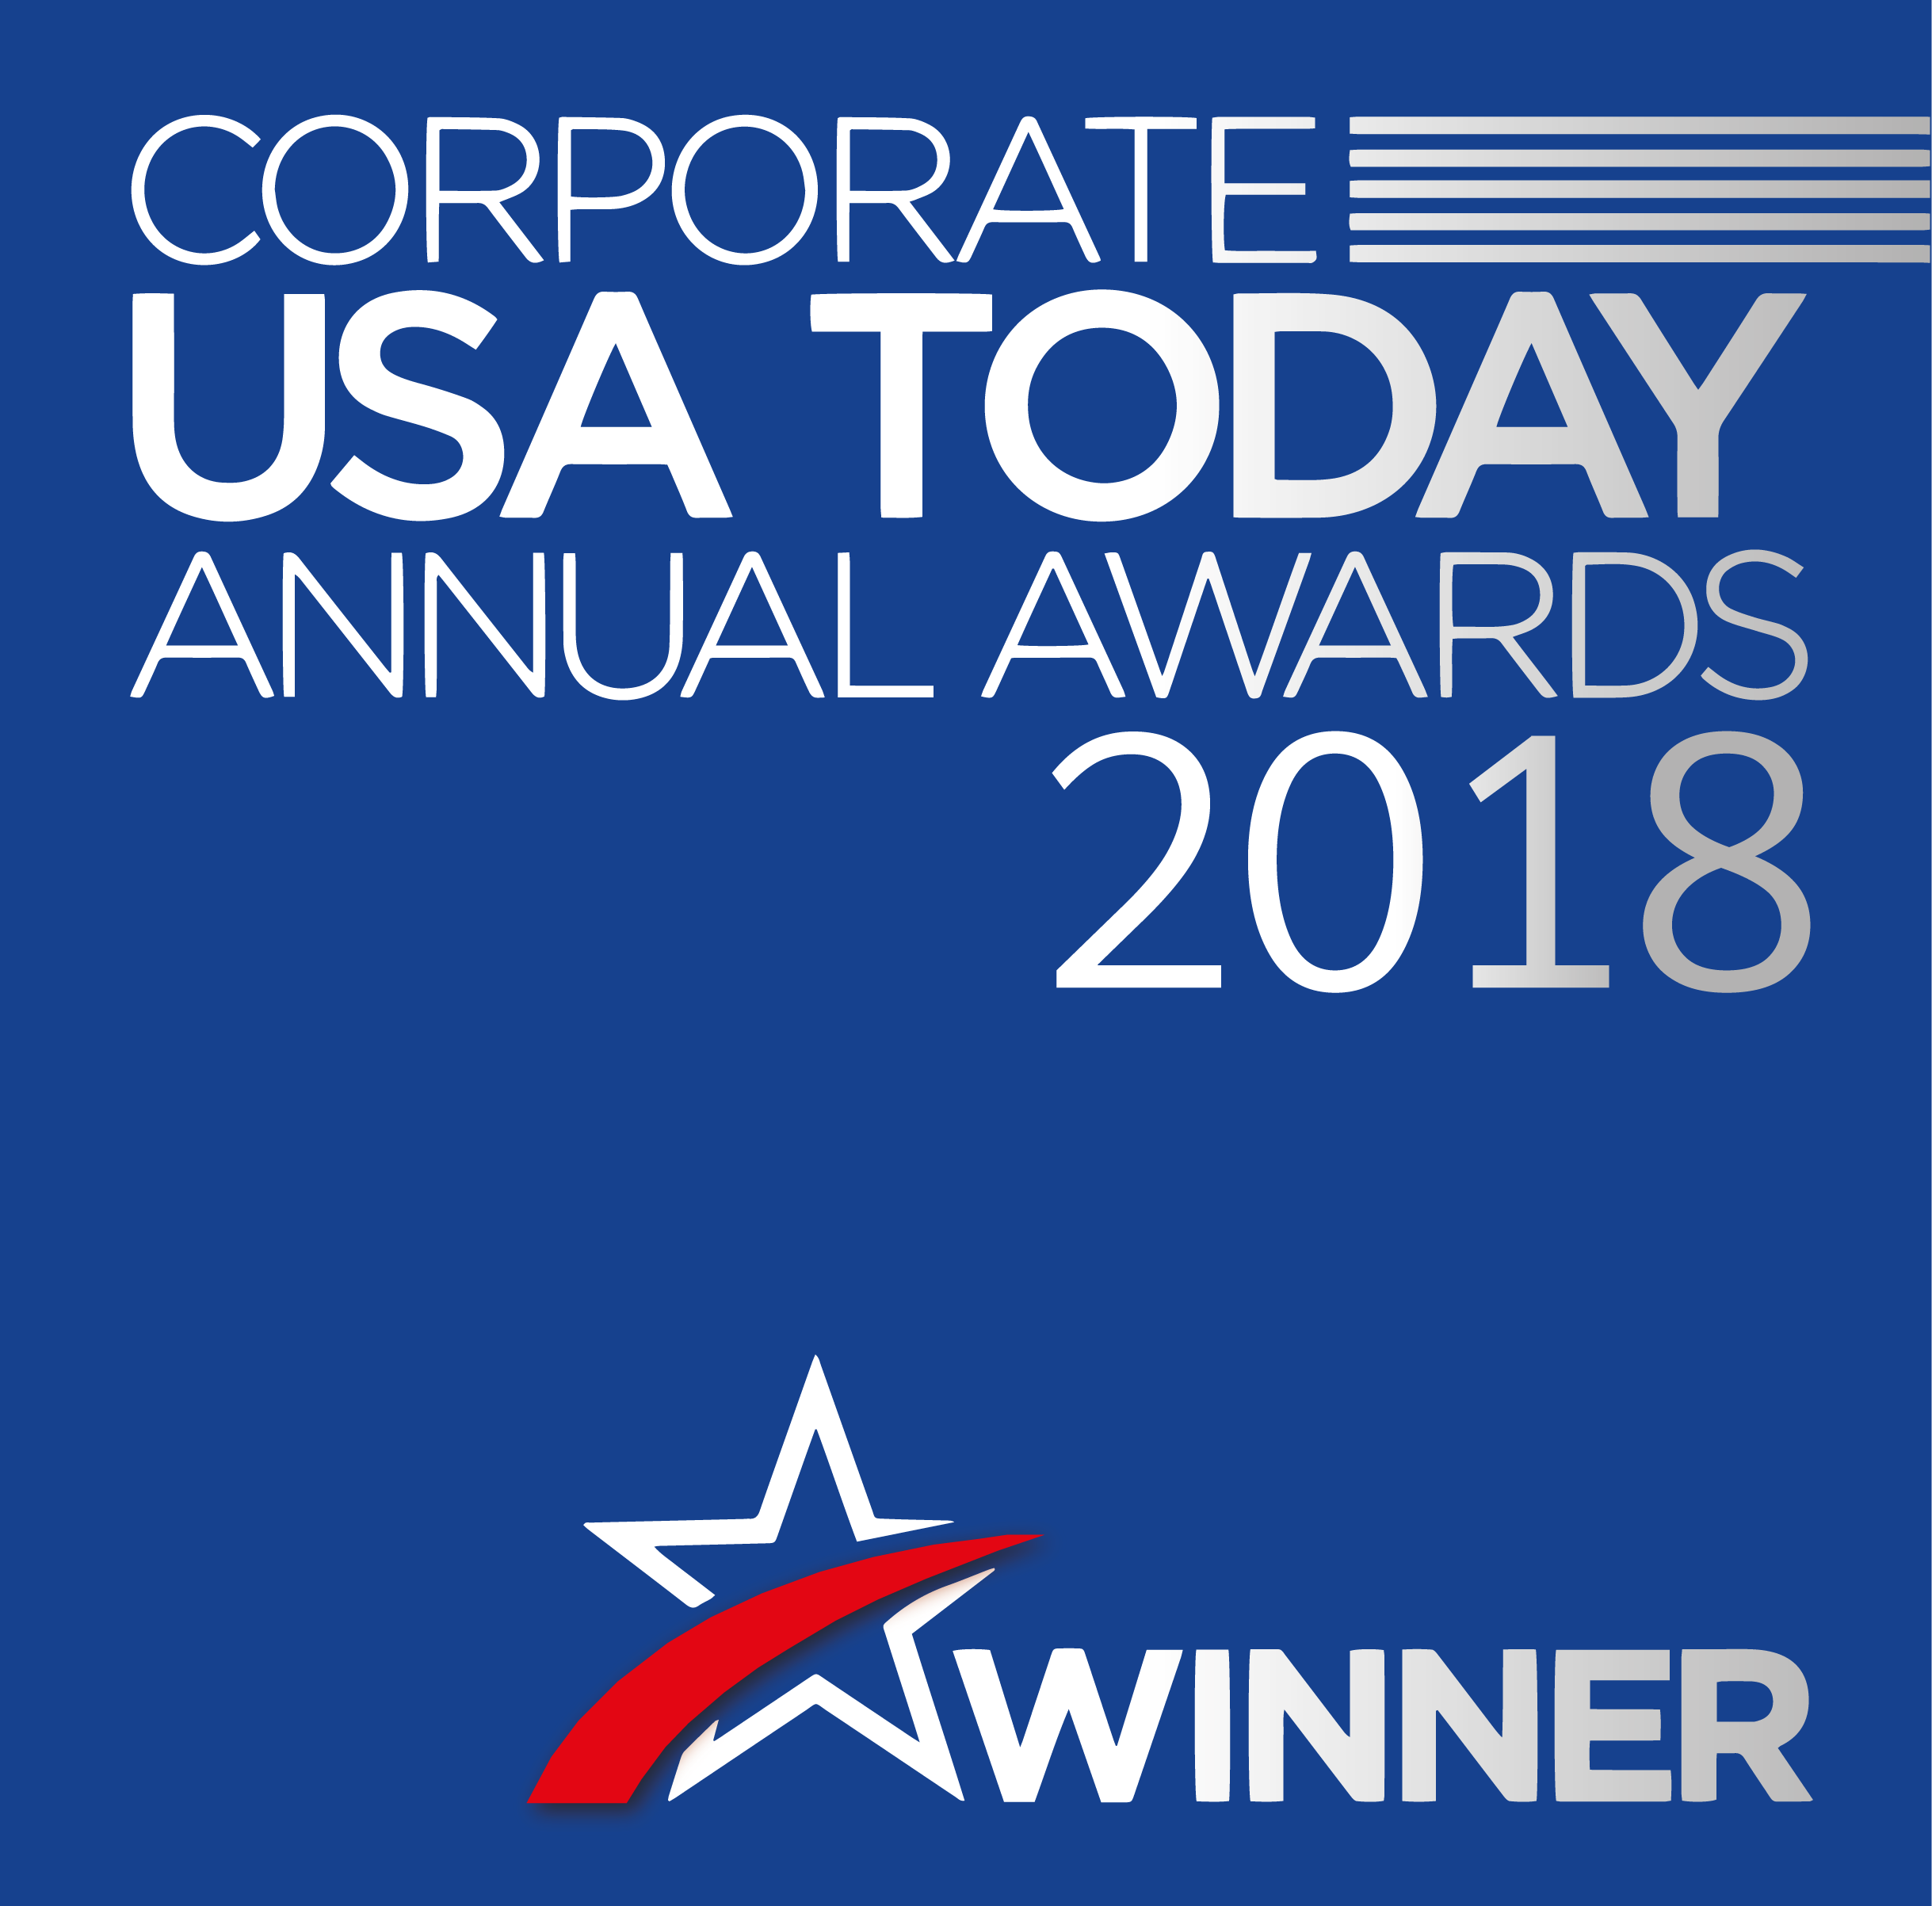 Corporate USA Today Annual Awards 2018 Awards Logo.png